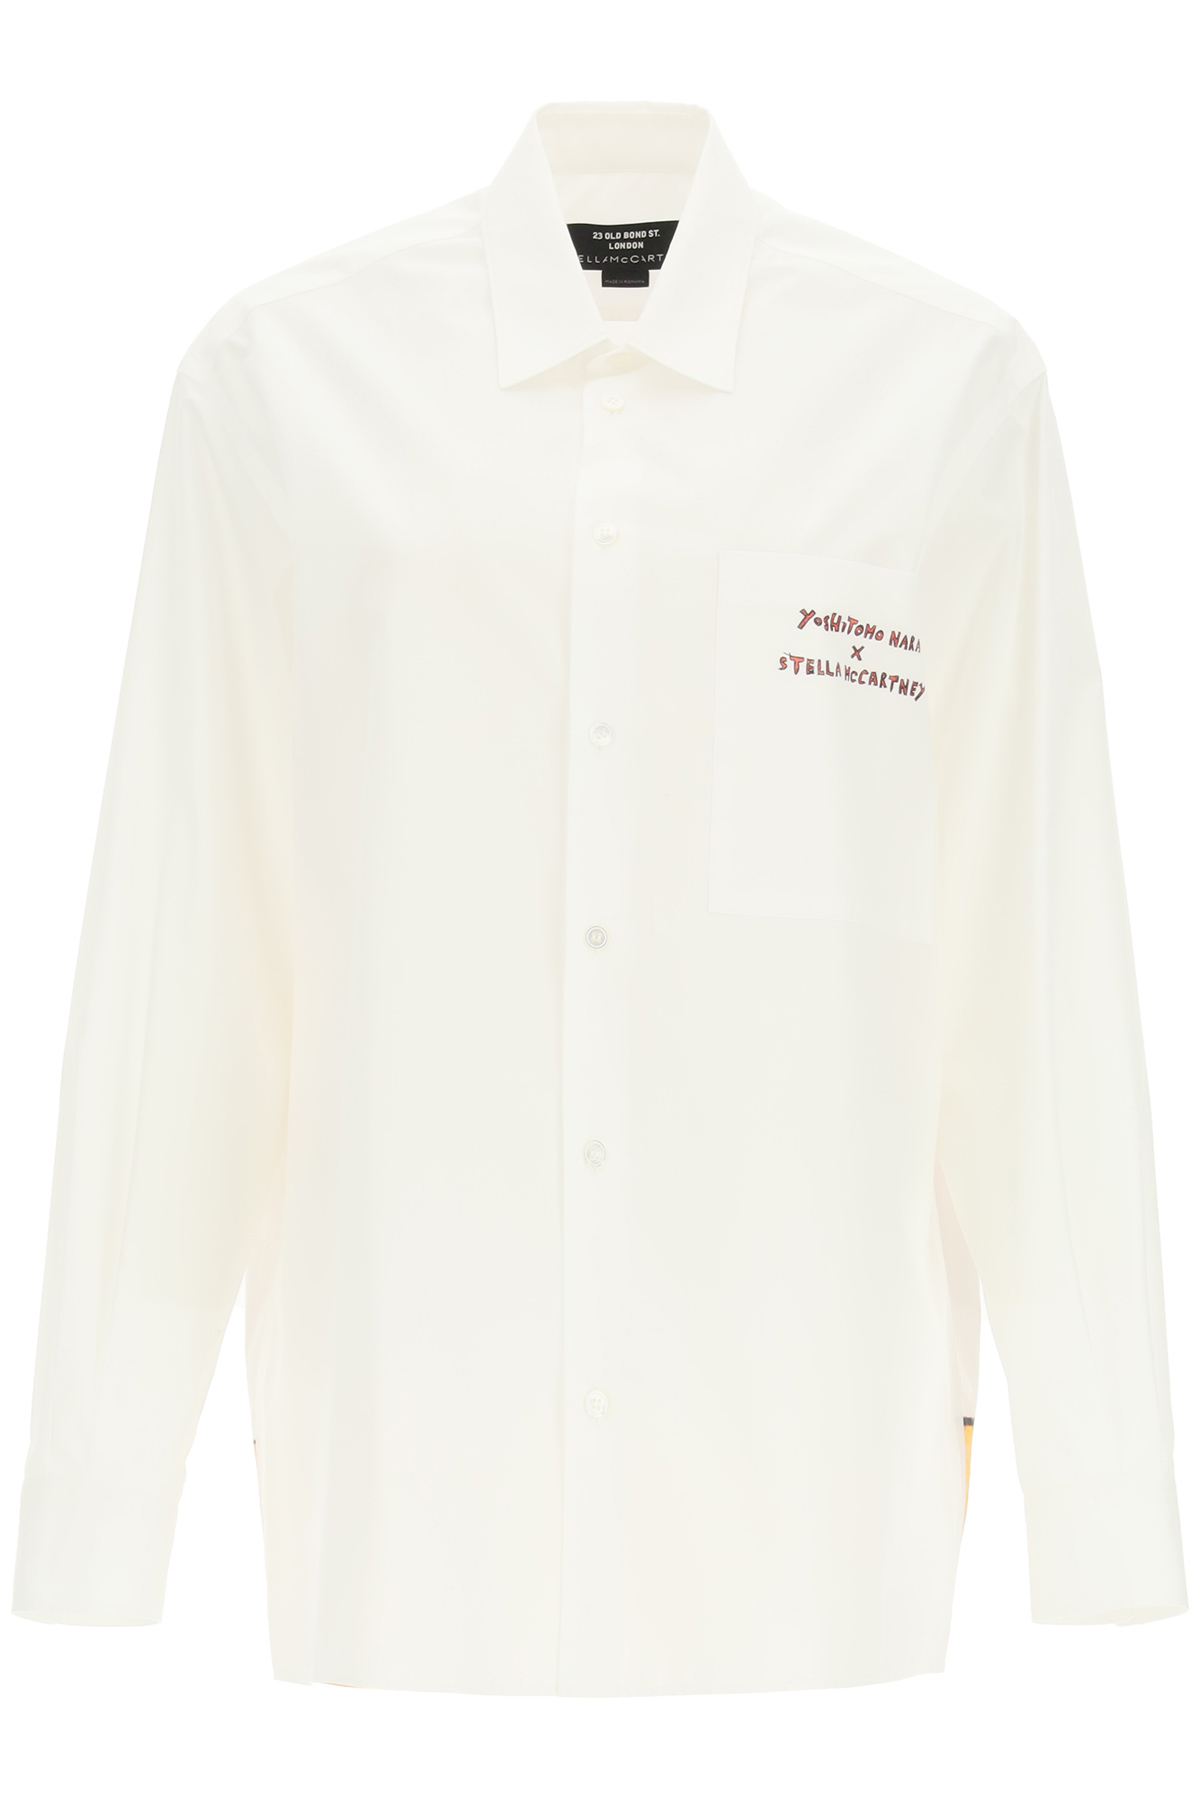 Stella Mccartney Clothing OVERSIZED PRINTED SHIRT